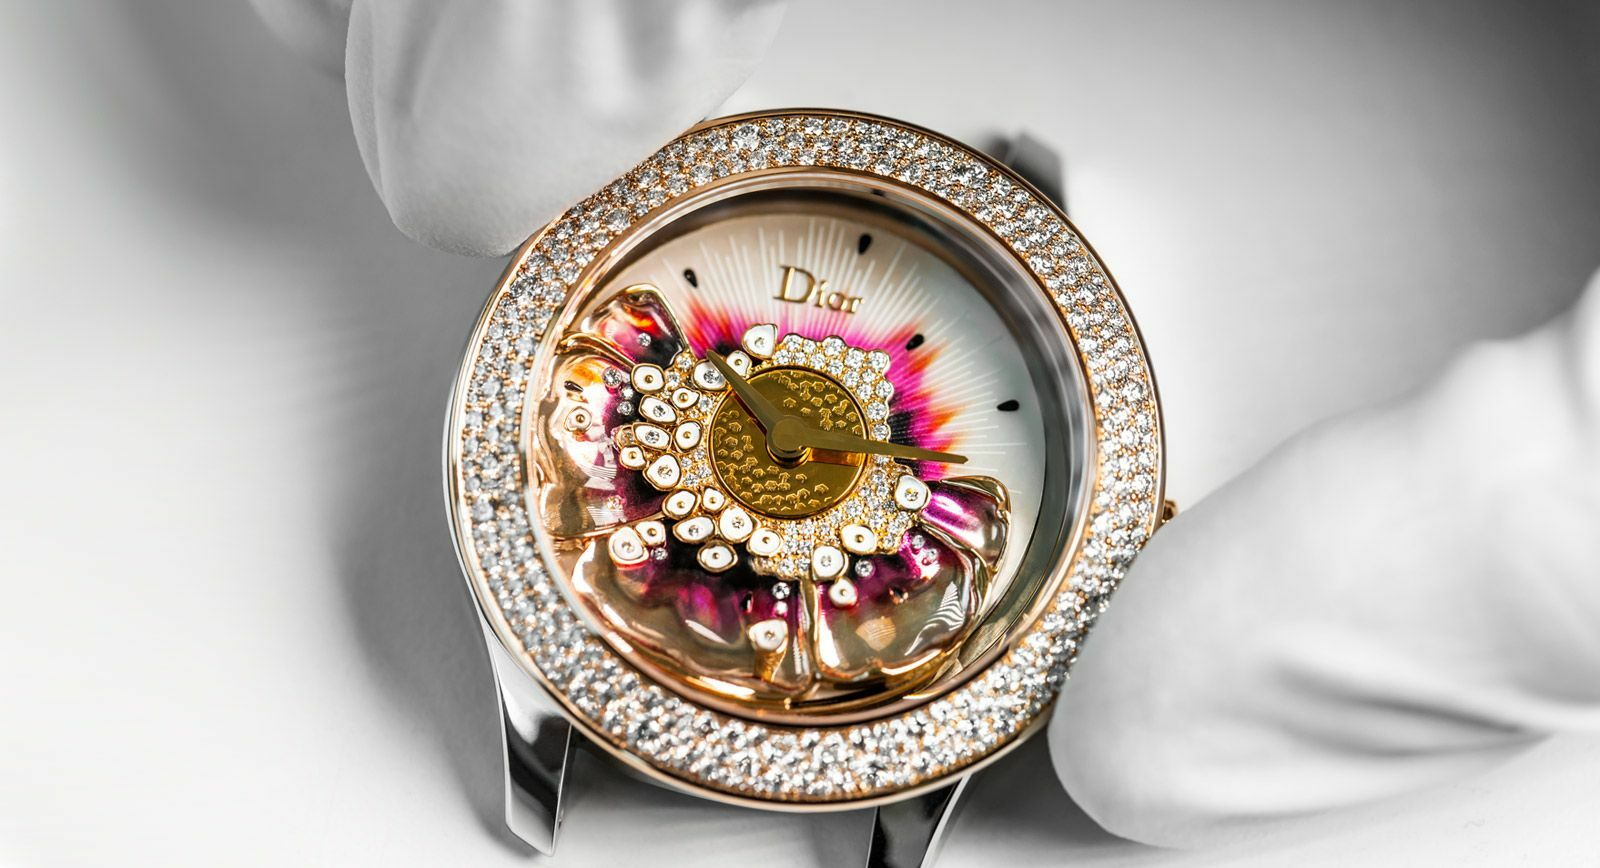 Dior: Latest additions to the 'Dior Grand Bal' watch collection - 'Miss Dior'